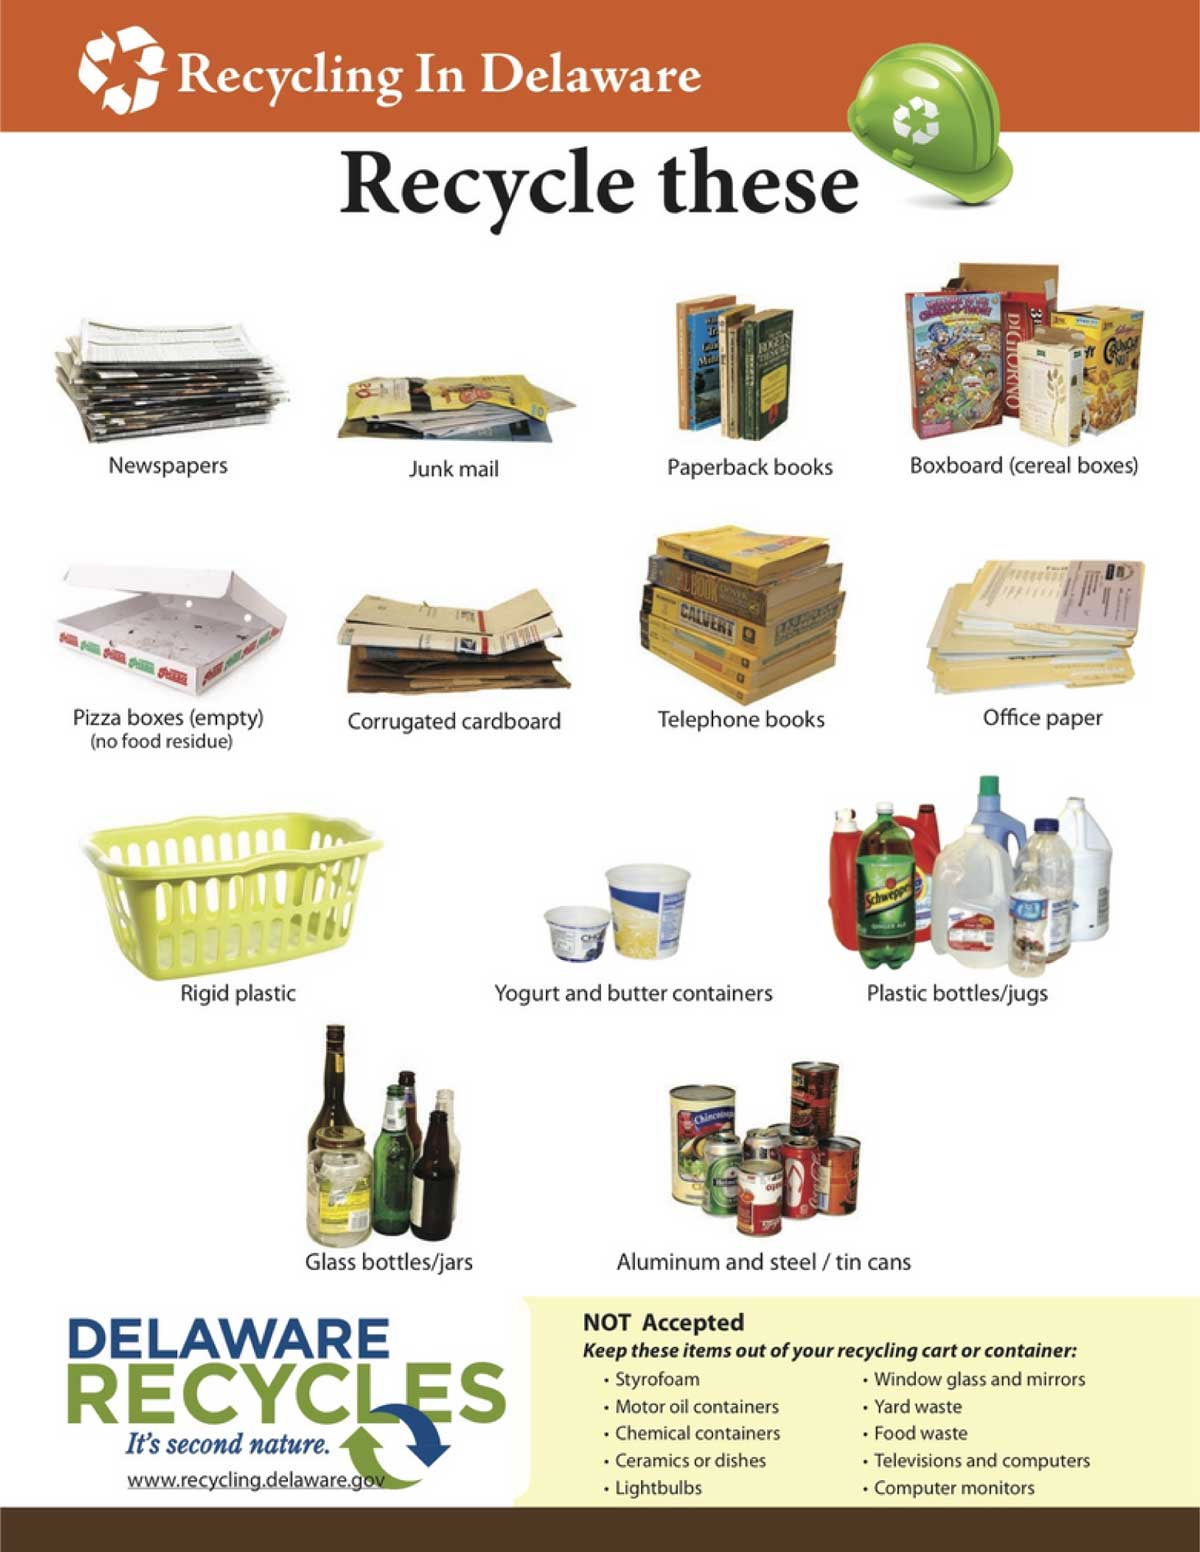 Recycling in Delaware